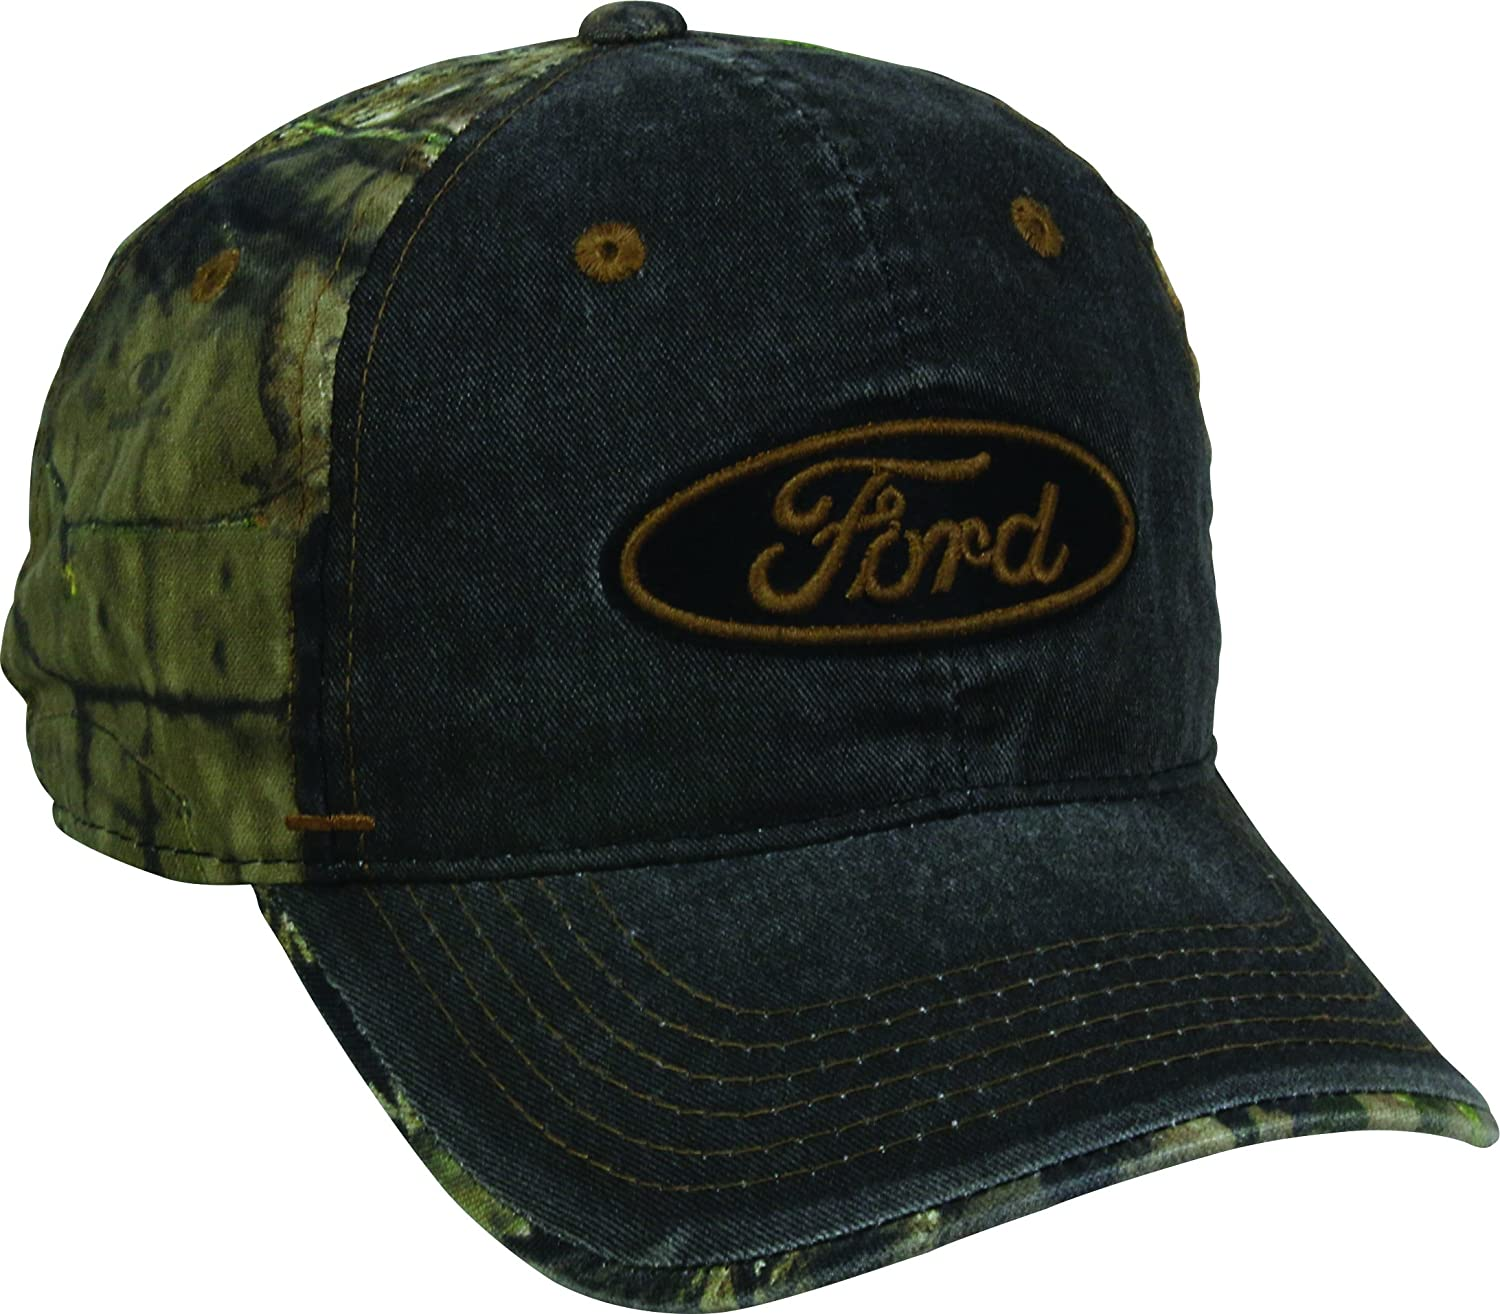 Amazon.com : Outdoor Cap Mens Ford Weathered Camo Back Cap, Black/Mossy Oak Country, One Size : Sports & Outdoors